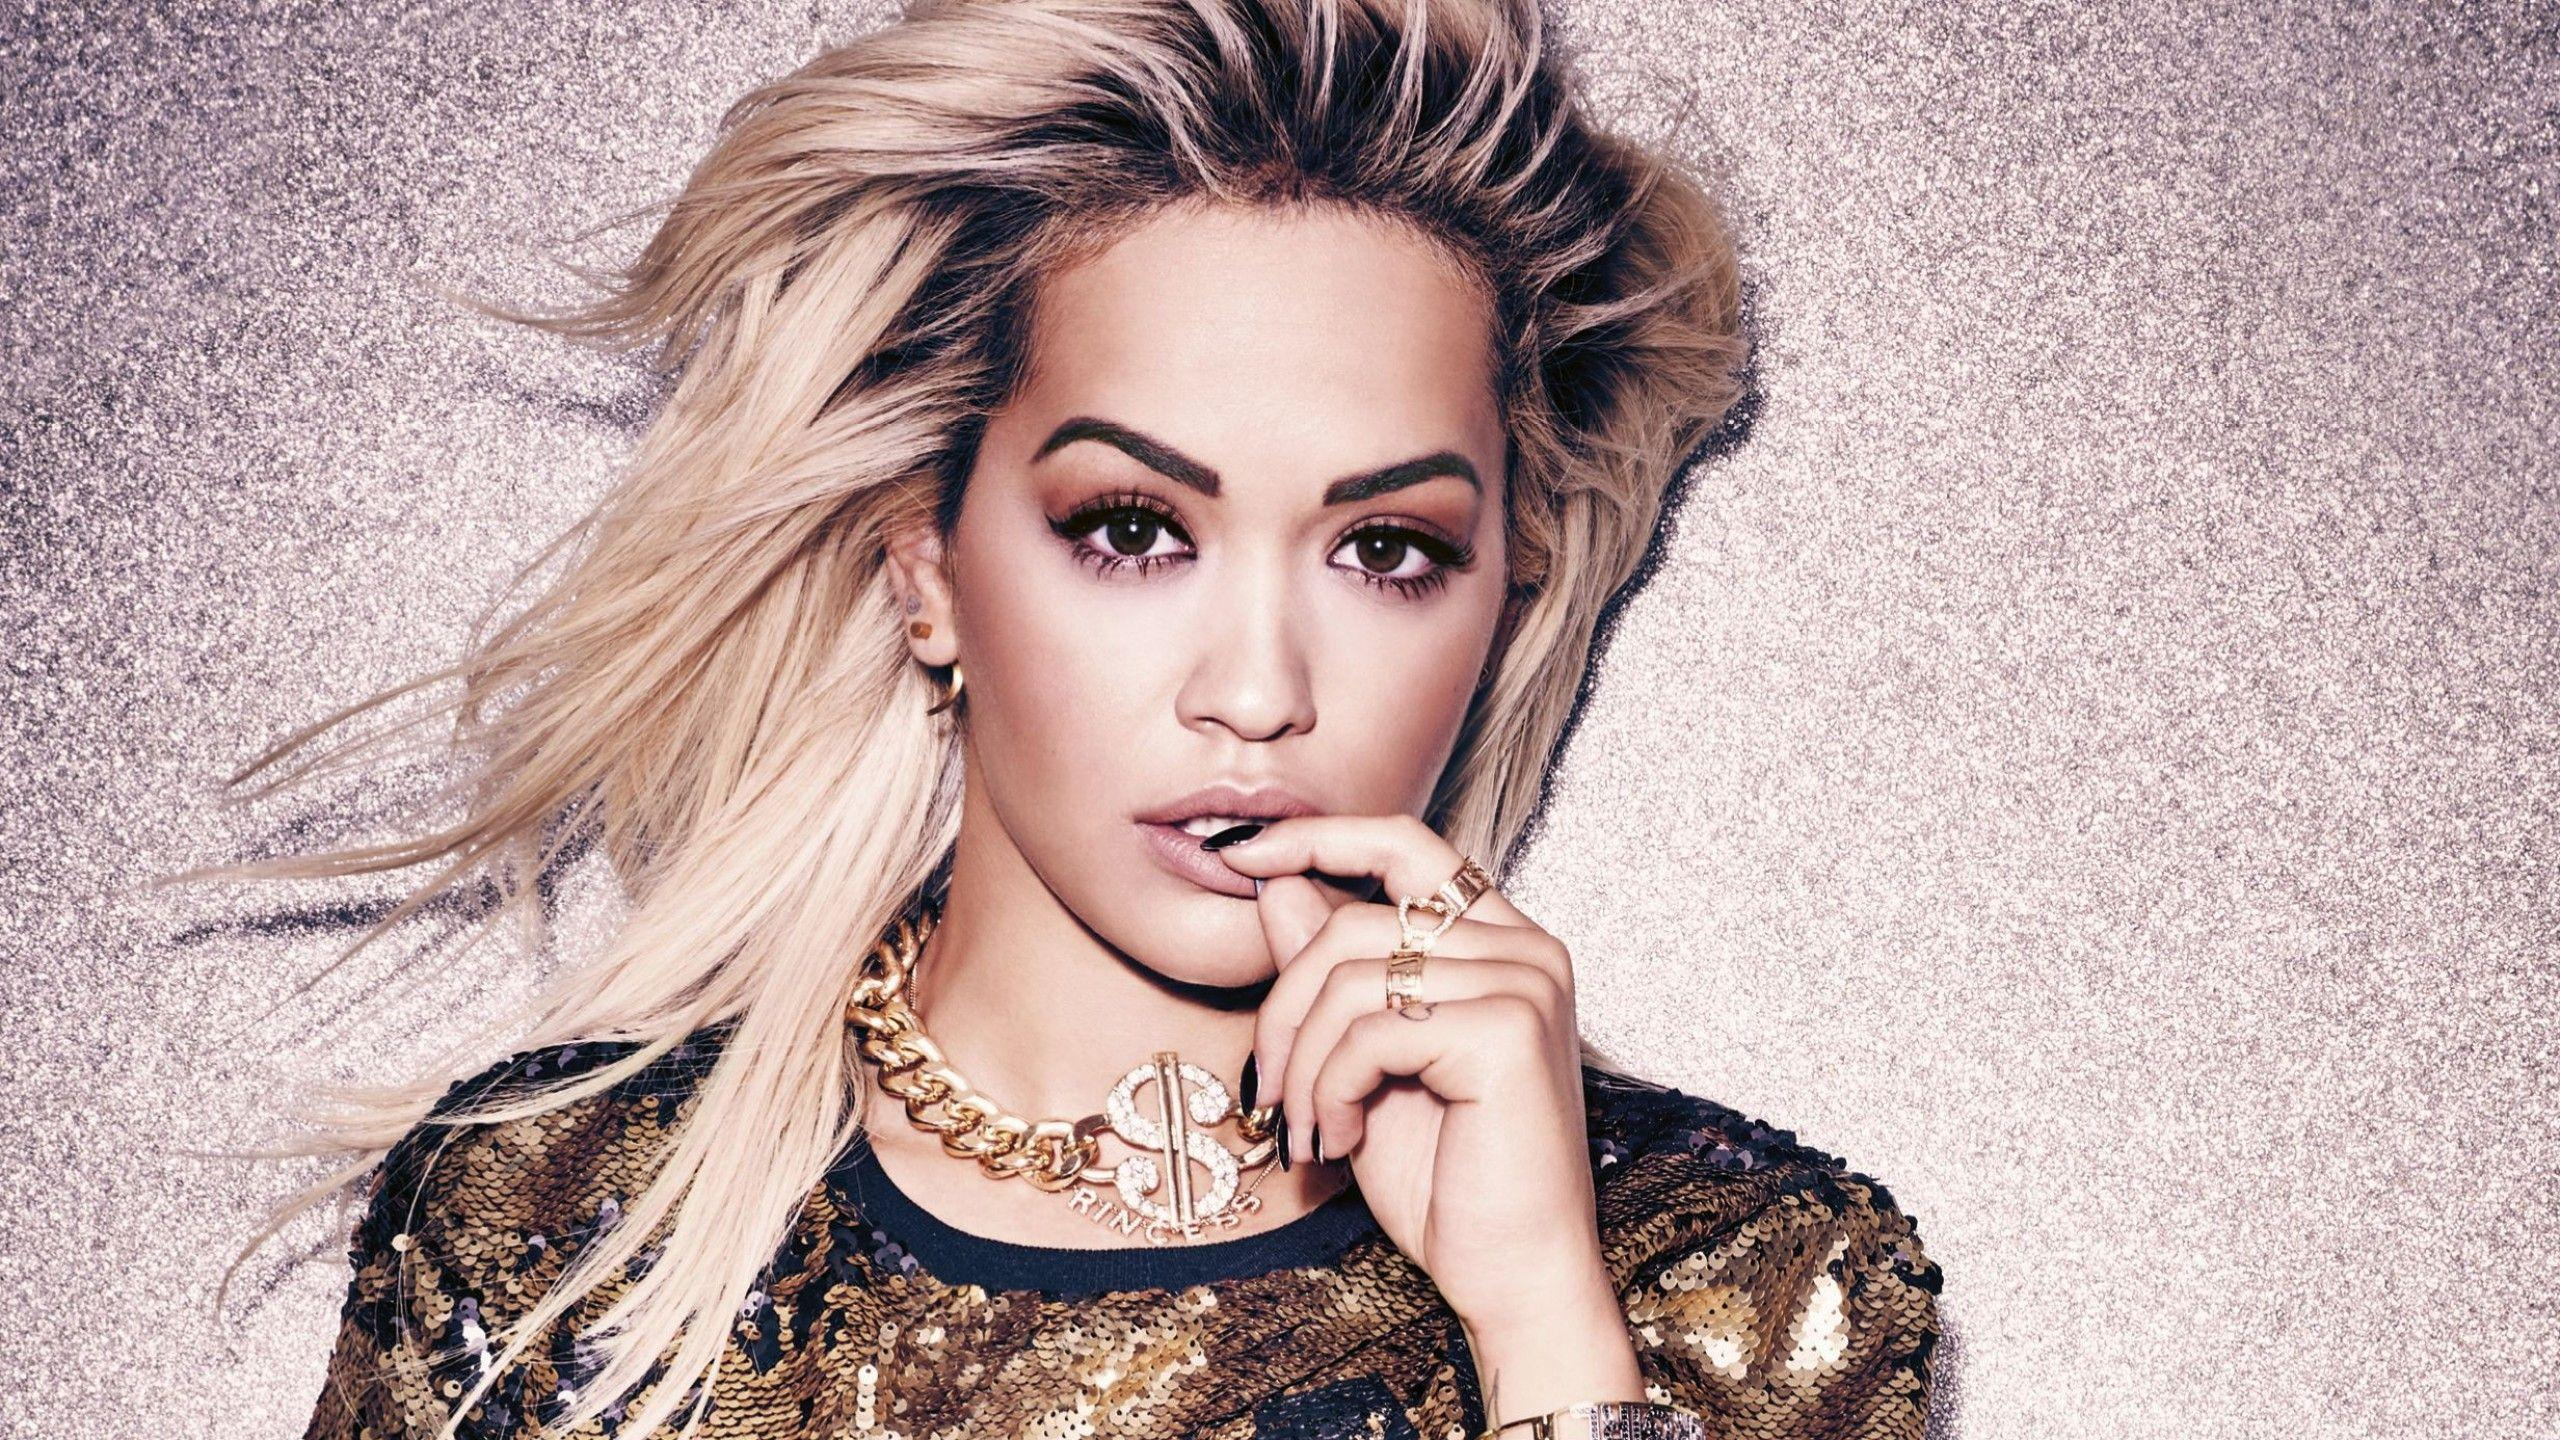 Wallpaper Rita Ora, 2017, HD, Celebrities / Most Popular, #6207